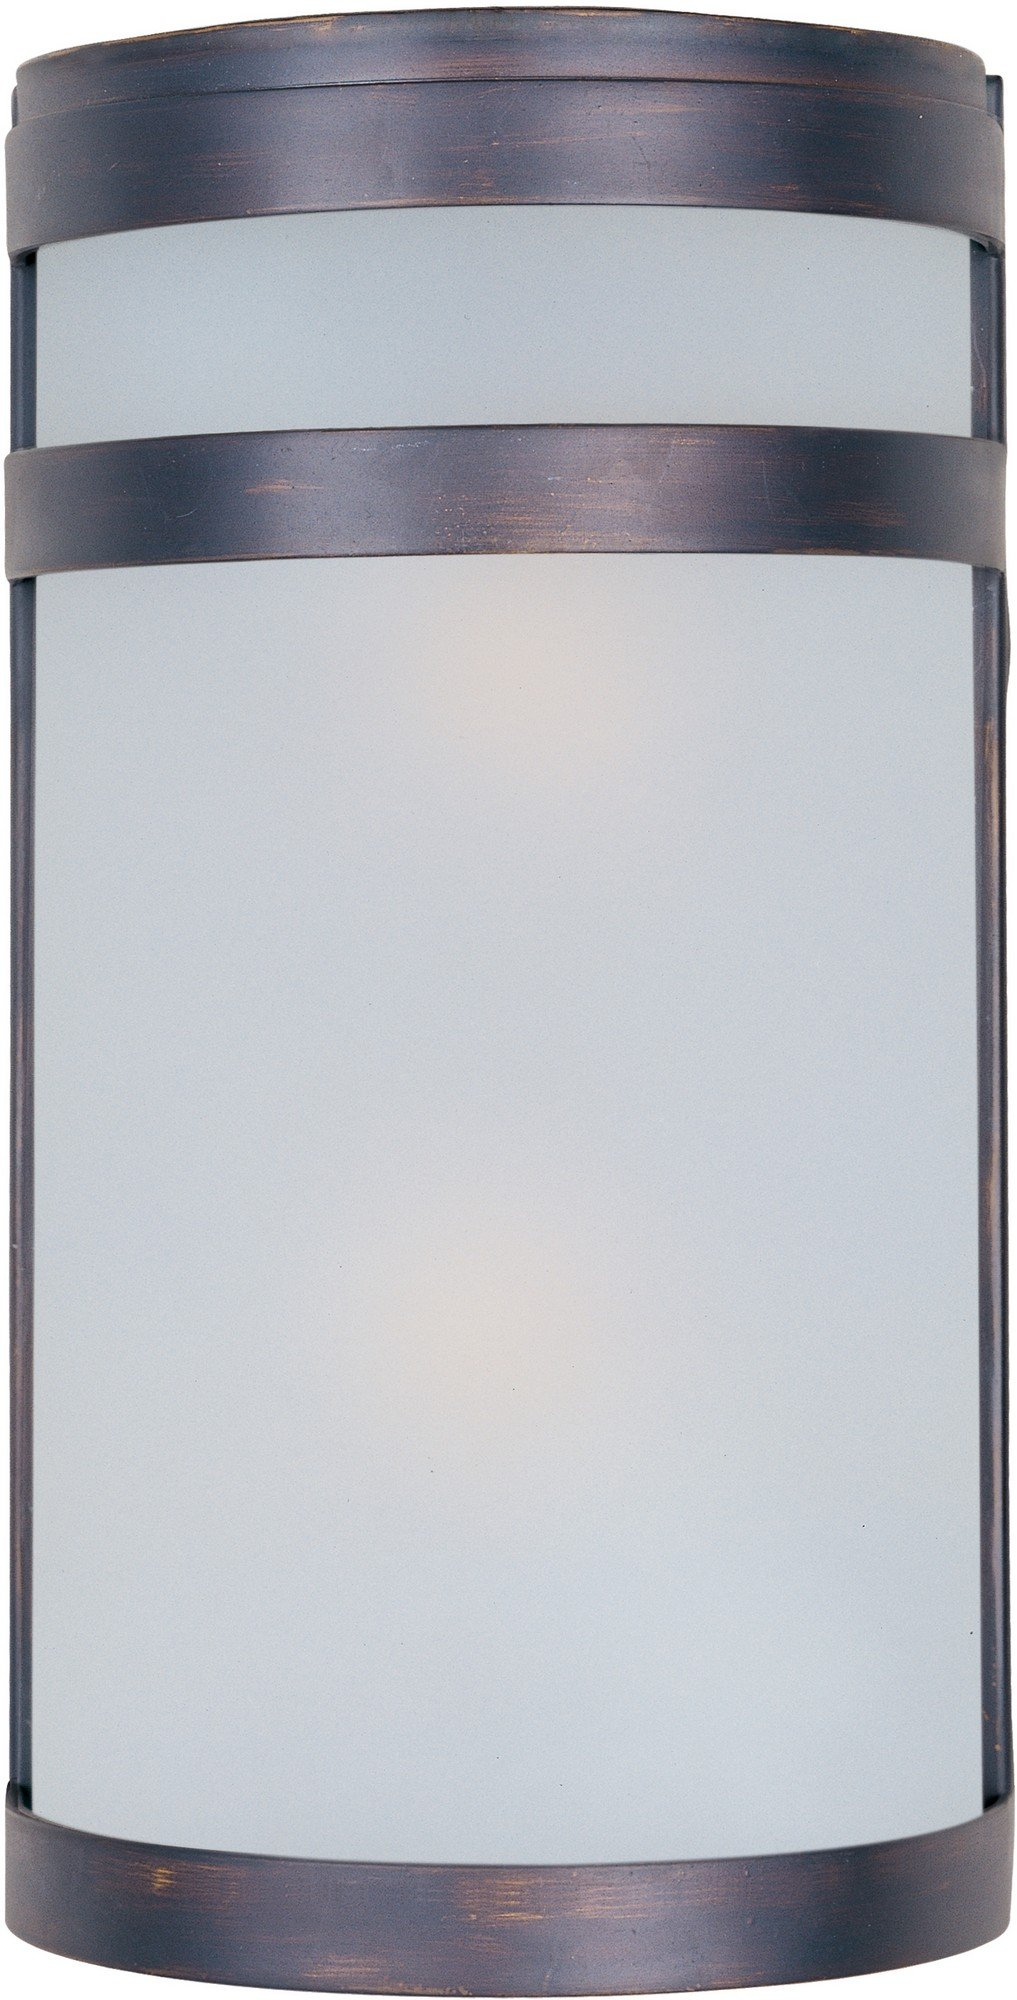 Maxim 5002FTOI Arc 2-Light Outdoor Wall Sconce Lantern, Oil Rubbed Bronze Finish, Frosted Glass, MB Incandescent Incandescent Bulb , 60W Max., Dry Safety Rating, Standard Dimmable, Glass Shade Material, Rated Lumens